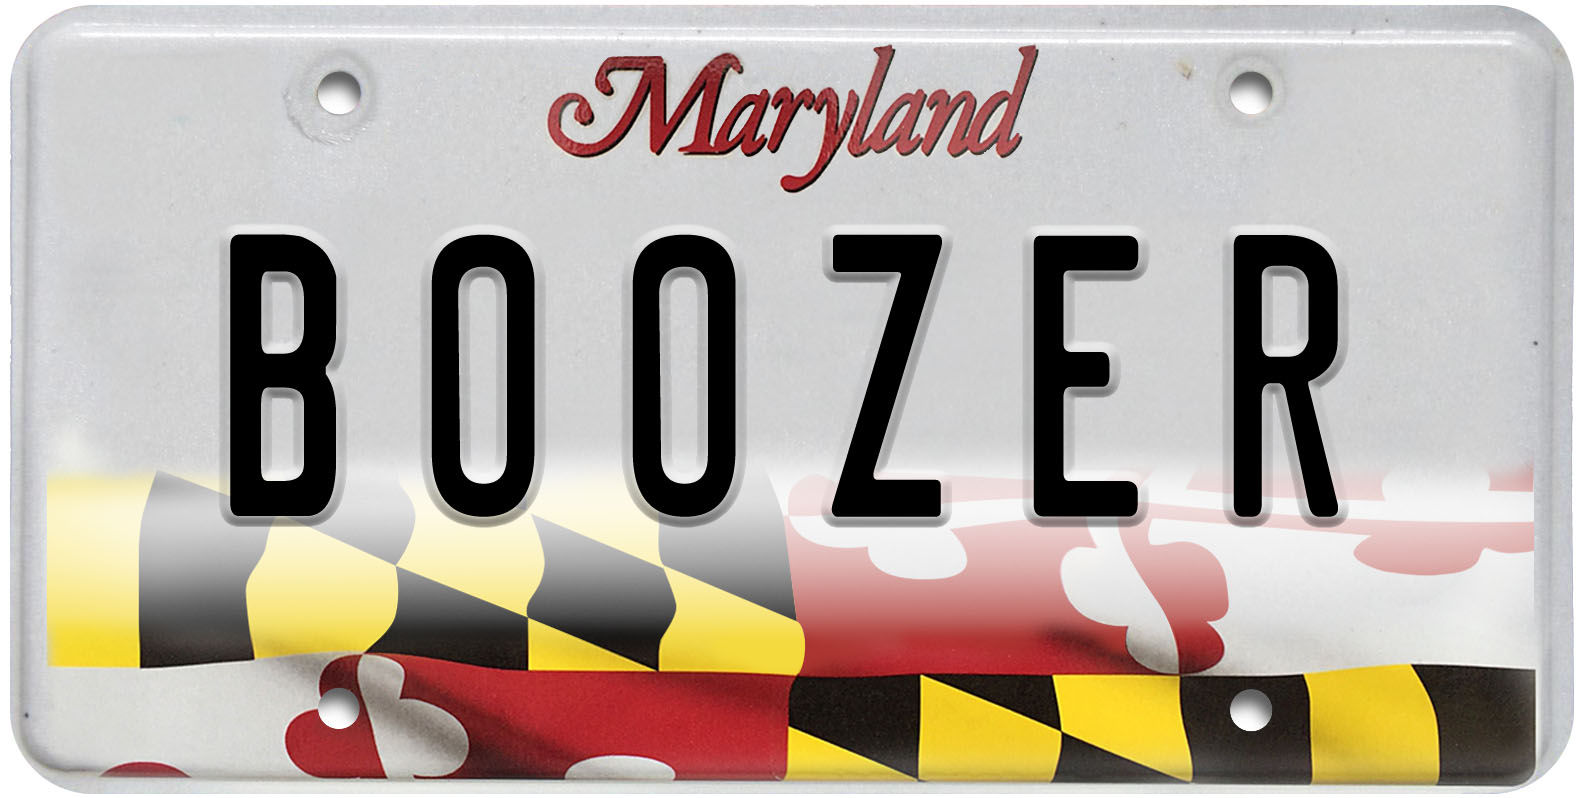 CENSORD: Funniest, foulest, most outrageous vanity plates in